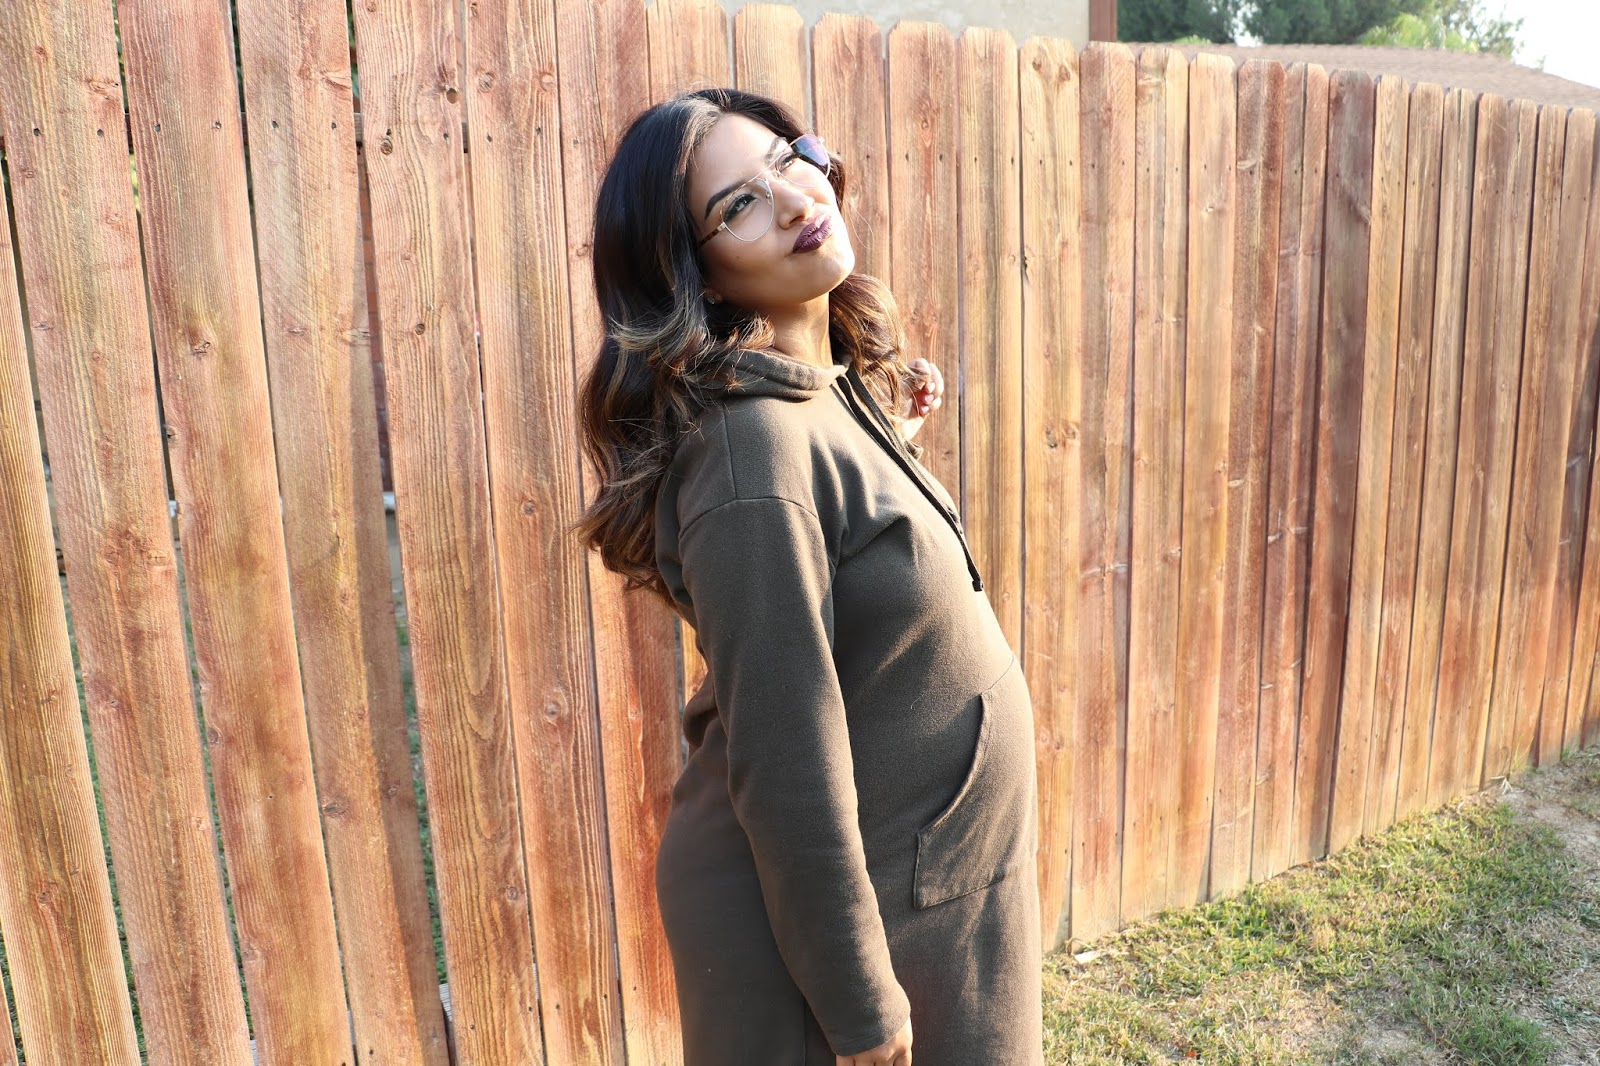 pregnant_woman_with_kissy_lips